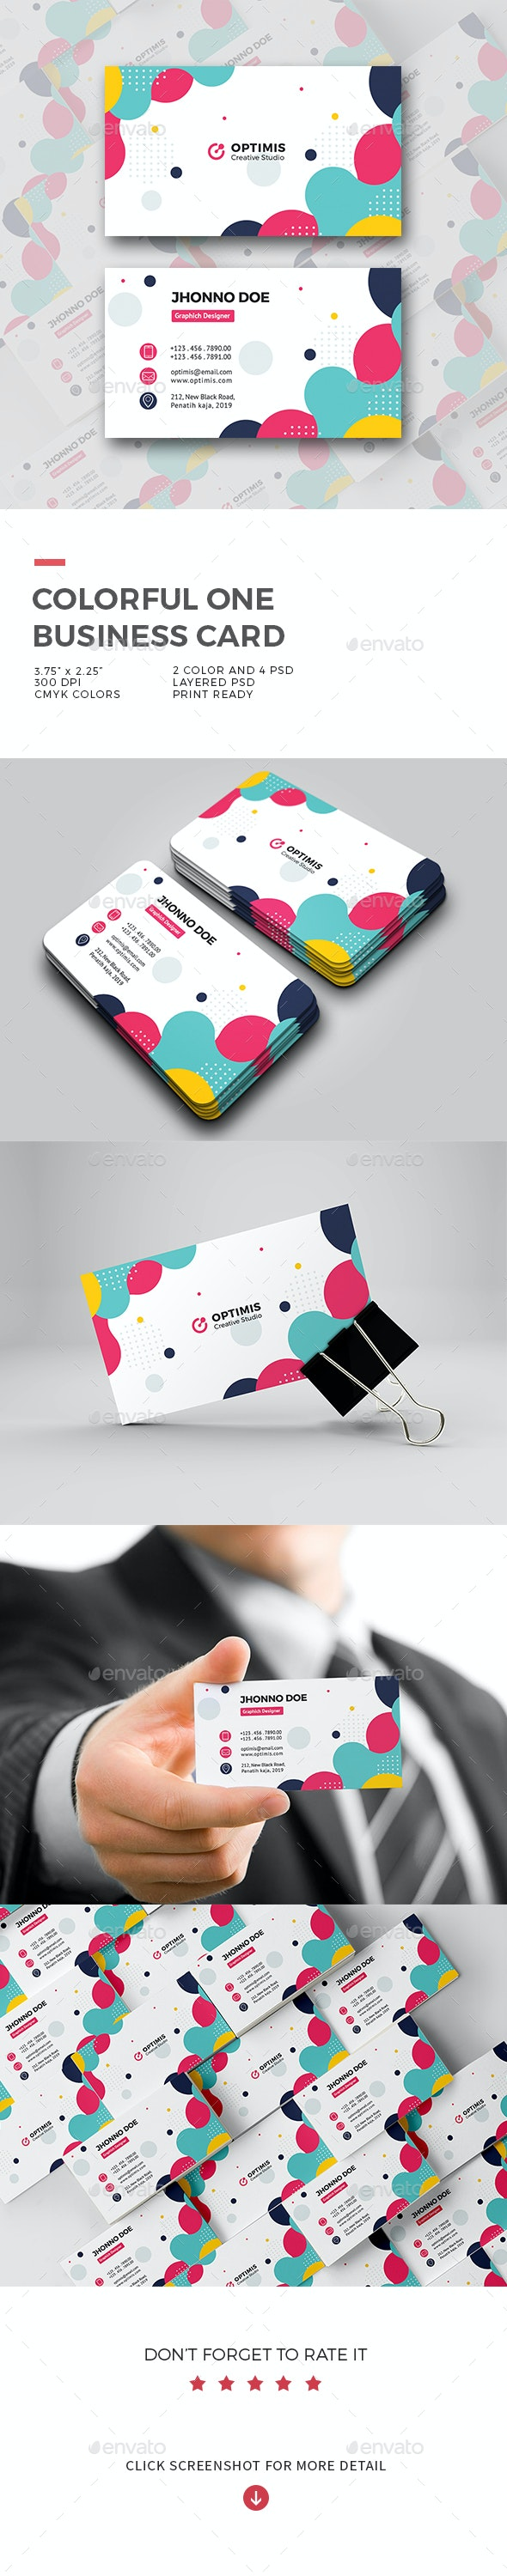 Colorful One Business Card - Creative Business Cards